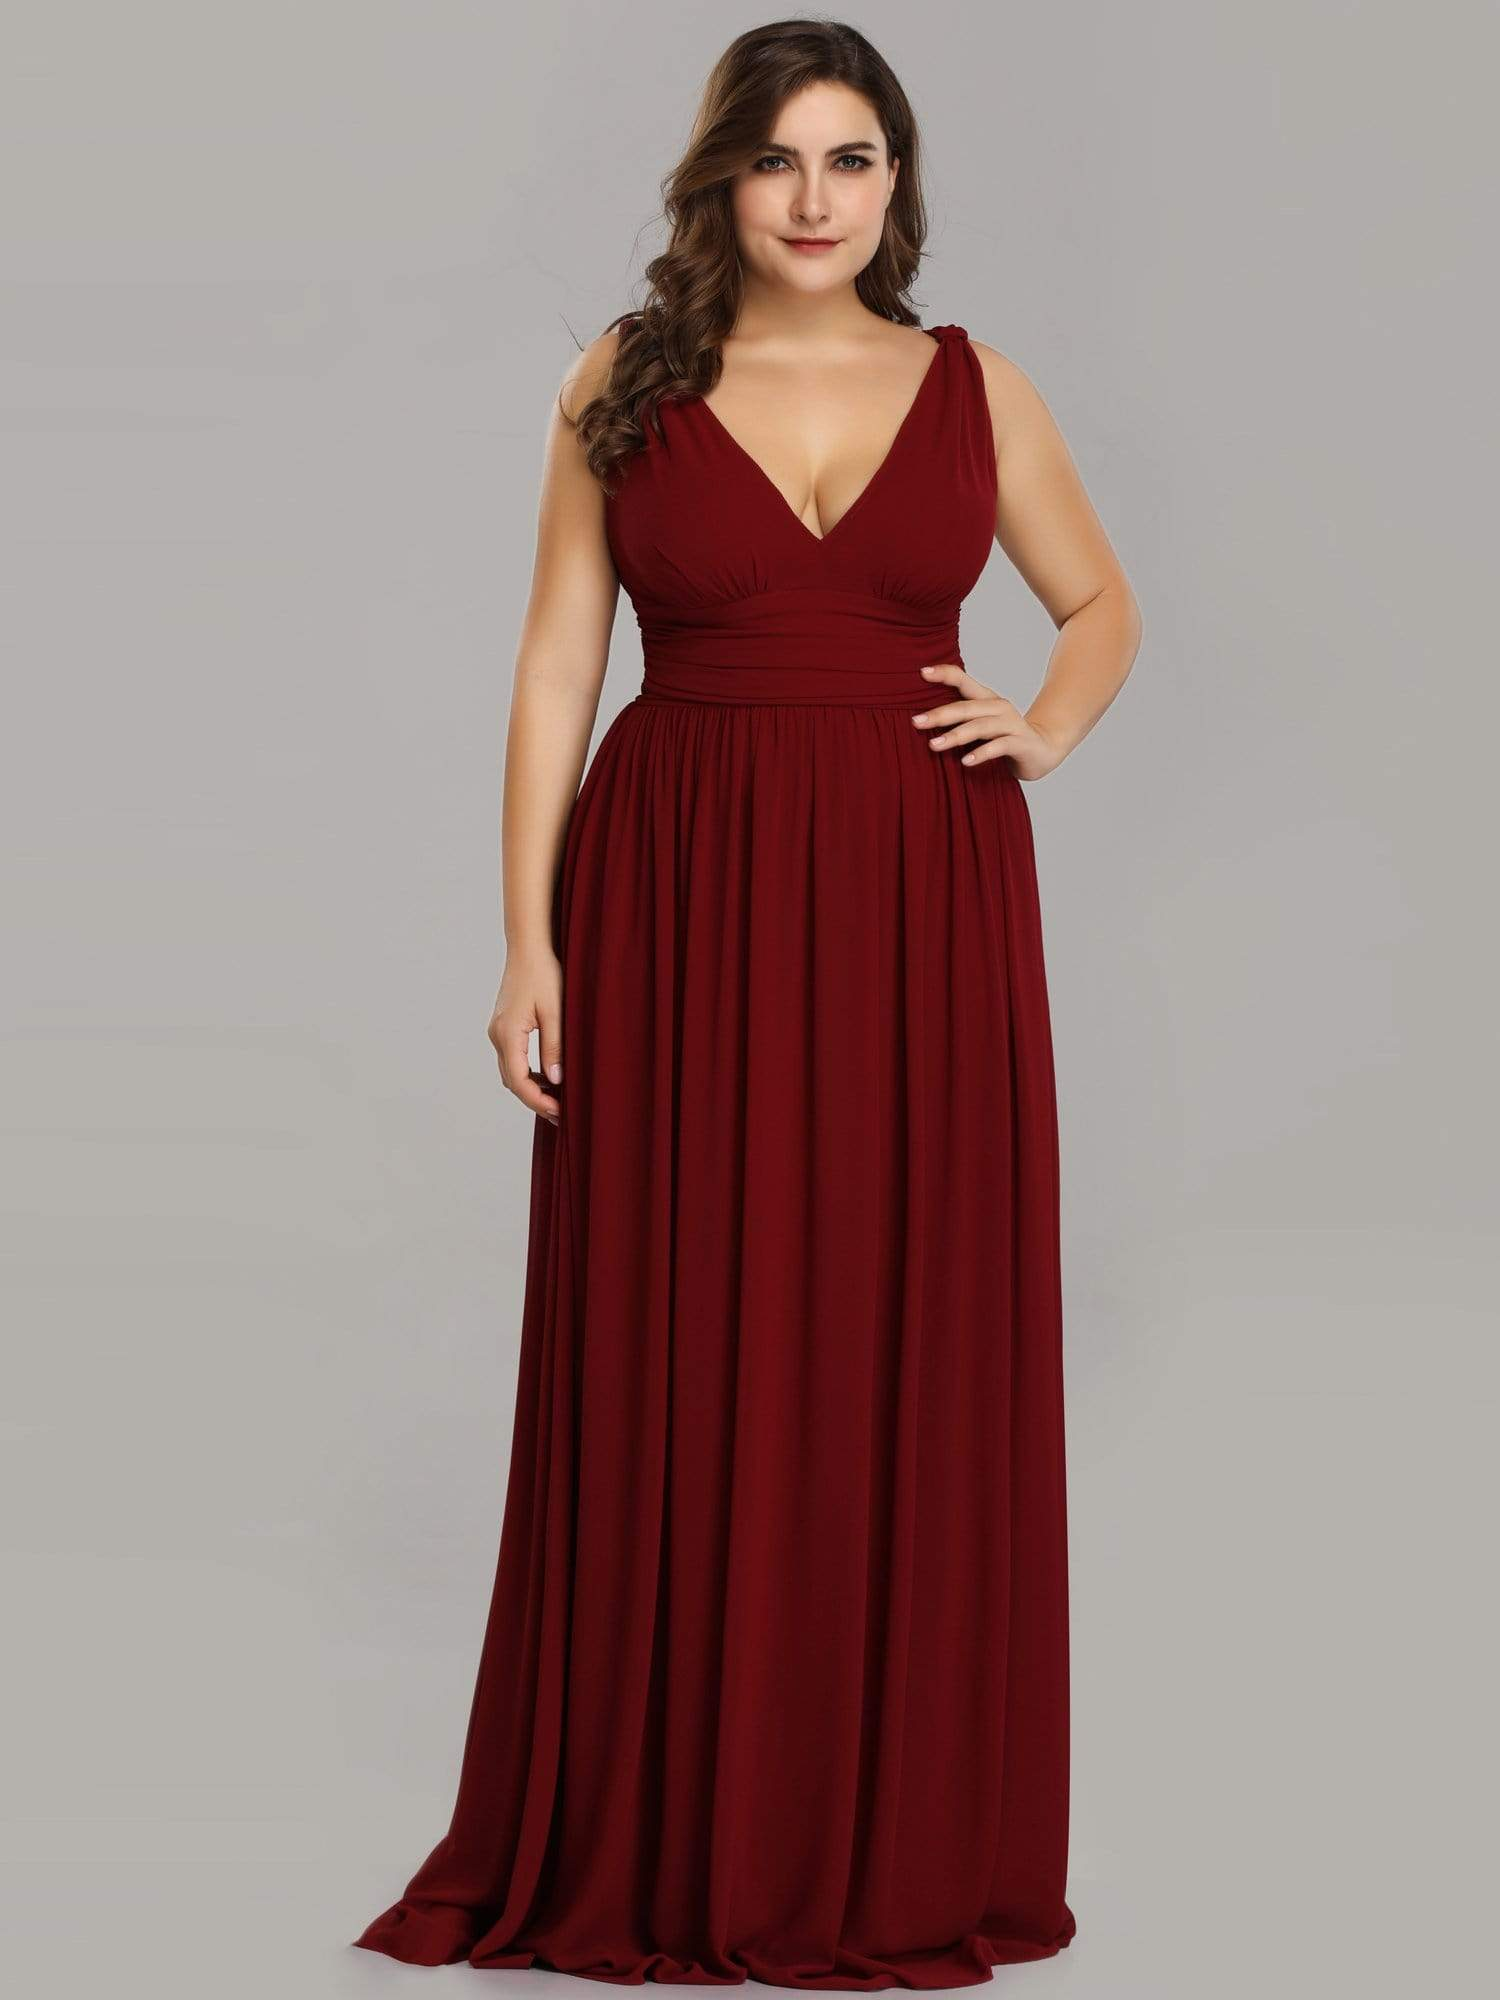 Veda V neck and back classic chiffon bridesmaid dress in burgundy-Bay Bridesmaid